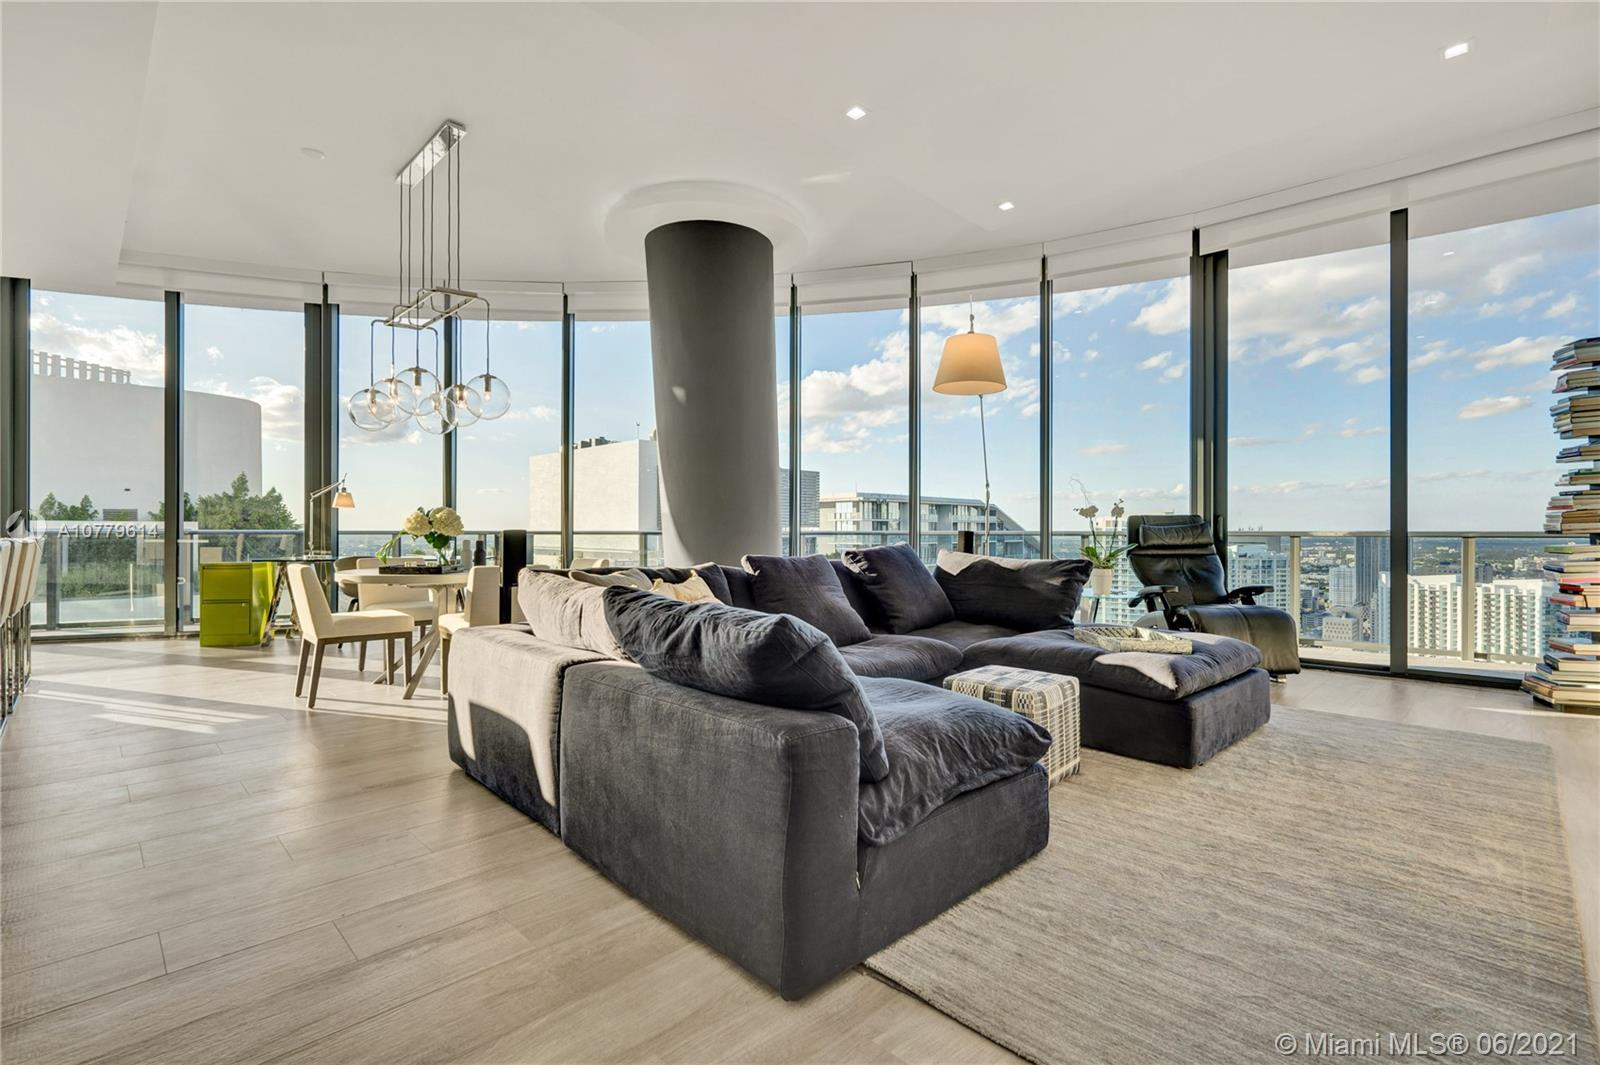 Sophisticated Penthouse Residence in Brickell Heights East! Captivating views from the wrap-around terrace over Miami Skyline and Biscayne Bay from sunrise to sunset. This 3/3.5 corner residence features luxurious updates with custom cabinetry, suspended ceiling light fixtures, upgraded kitchen cabinetry & appliances. Floor-to-ceiling windows and balcony access from all bedroom create a spacious contemporary ambiance throughout. Brickell Heights amenities include the exquisite Equinox Gym & Spa, Soul Cycle studio, resident-only Rooftop Sky Pool Deck, private Screening and Entertainment Rooms, state-of-the-art Business Center, Kids Club and 24/7 Concierge. A very private residence above the vibrant Brickell area.